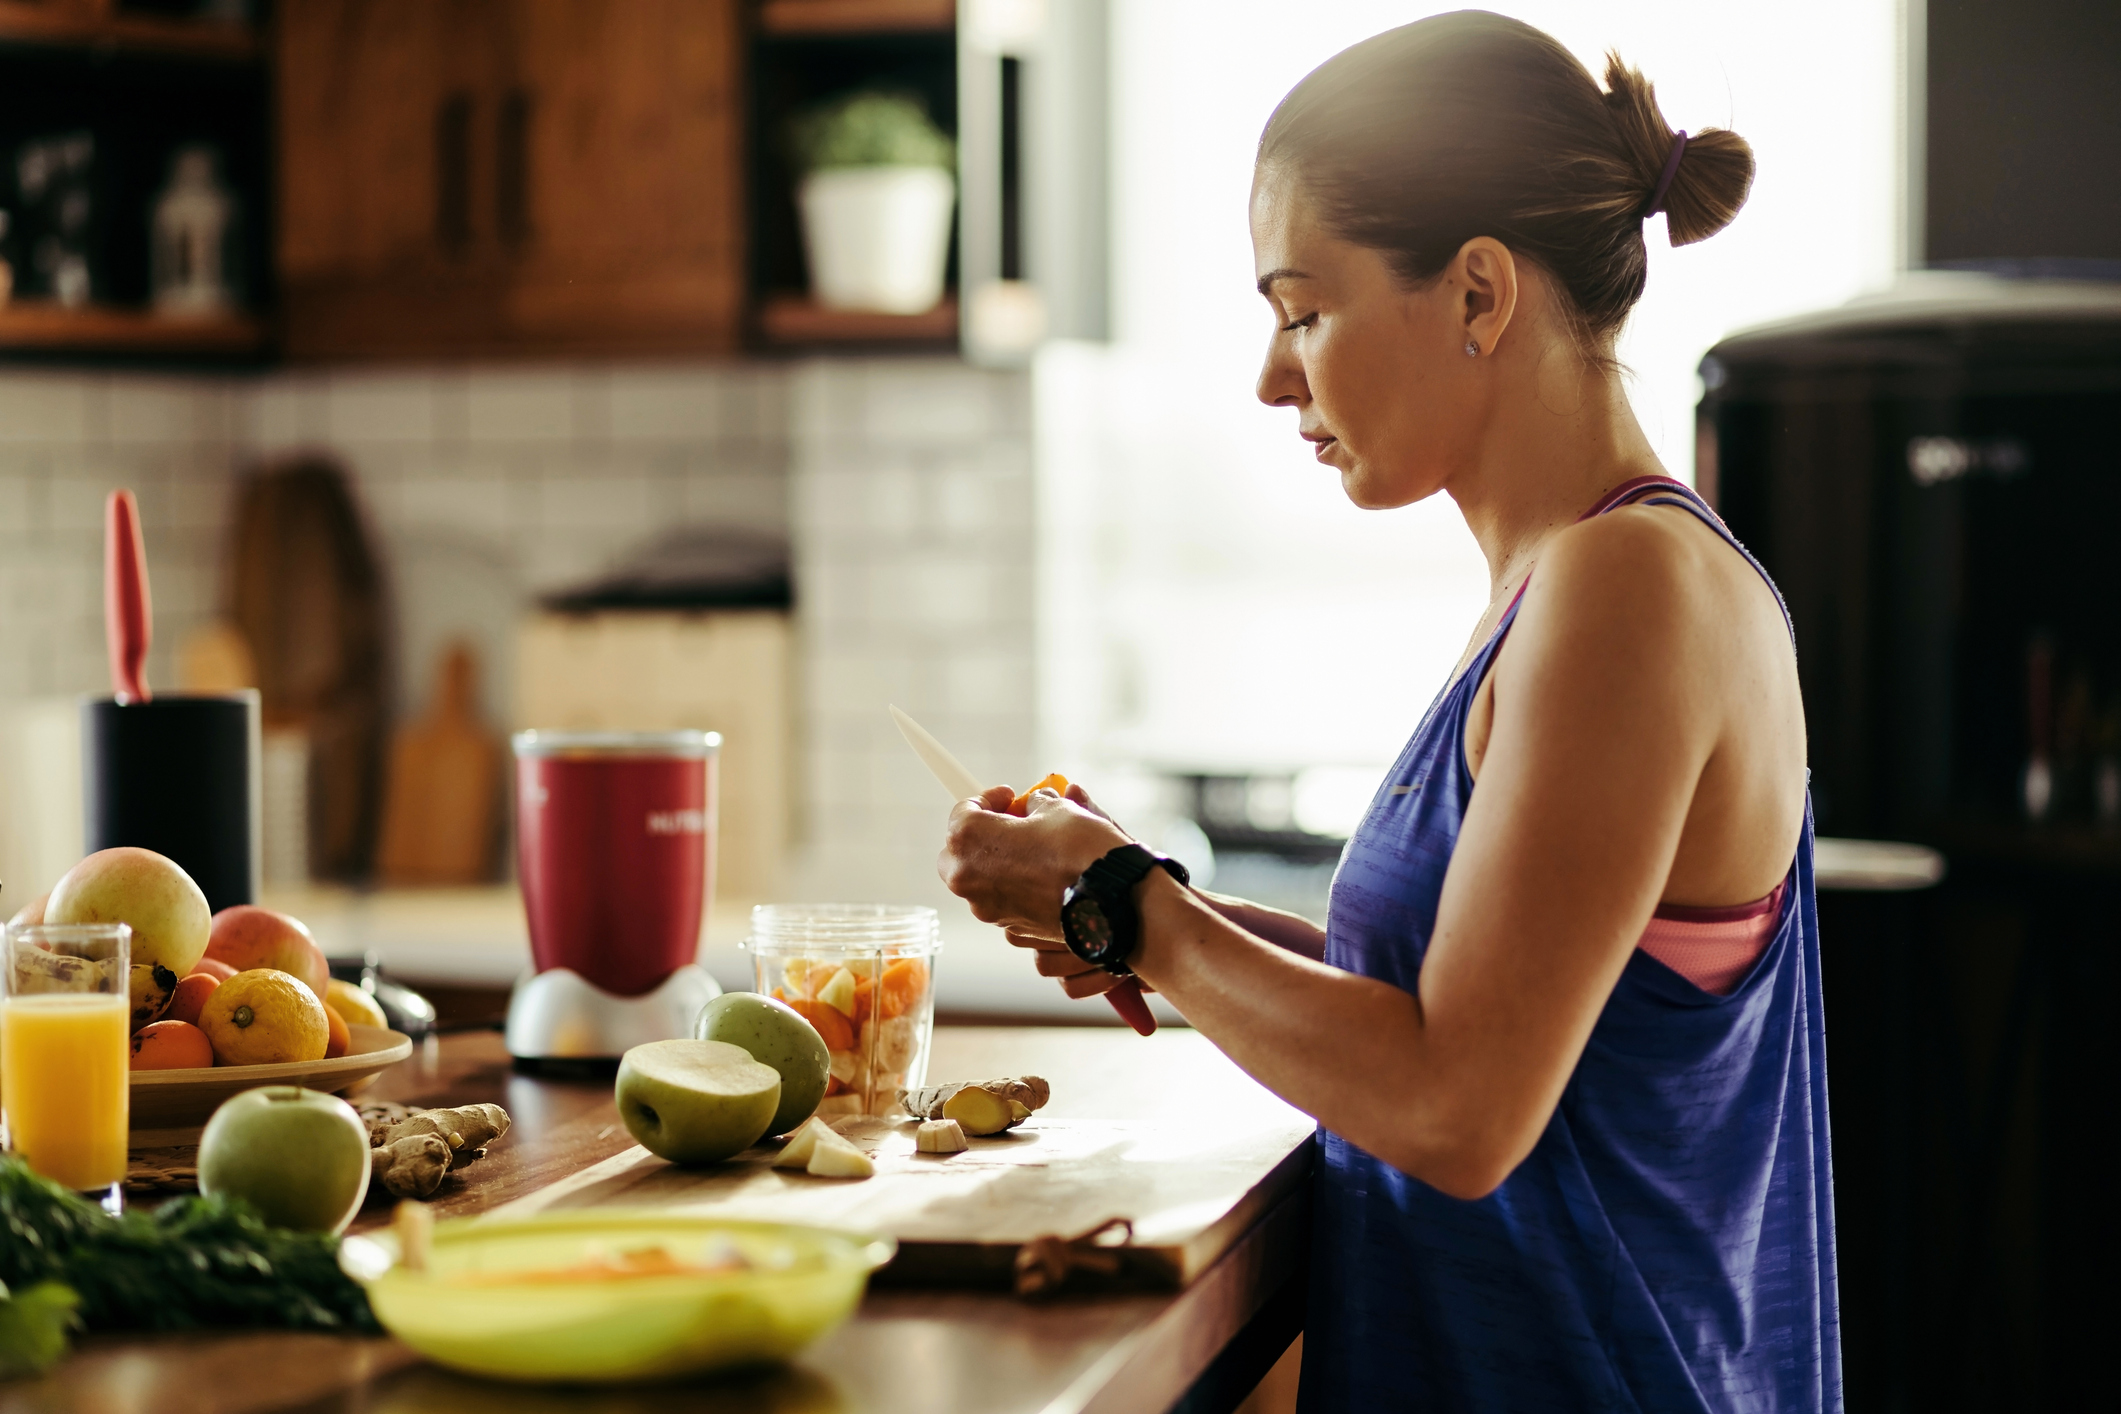 woman in athletic clothing standing at a kitchen counter cutting up fresh fruit for a smoothie